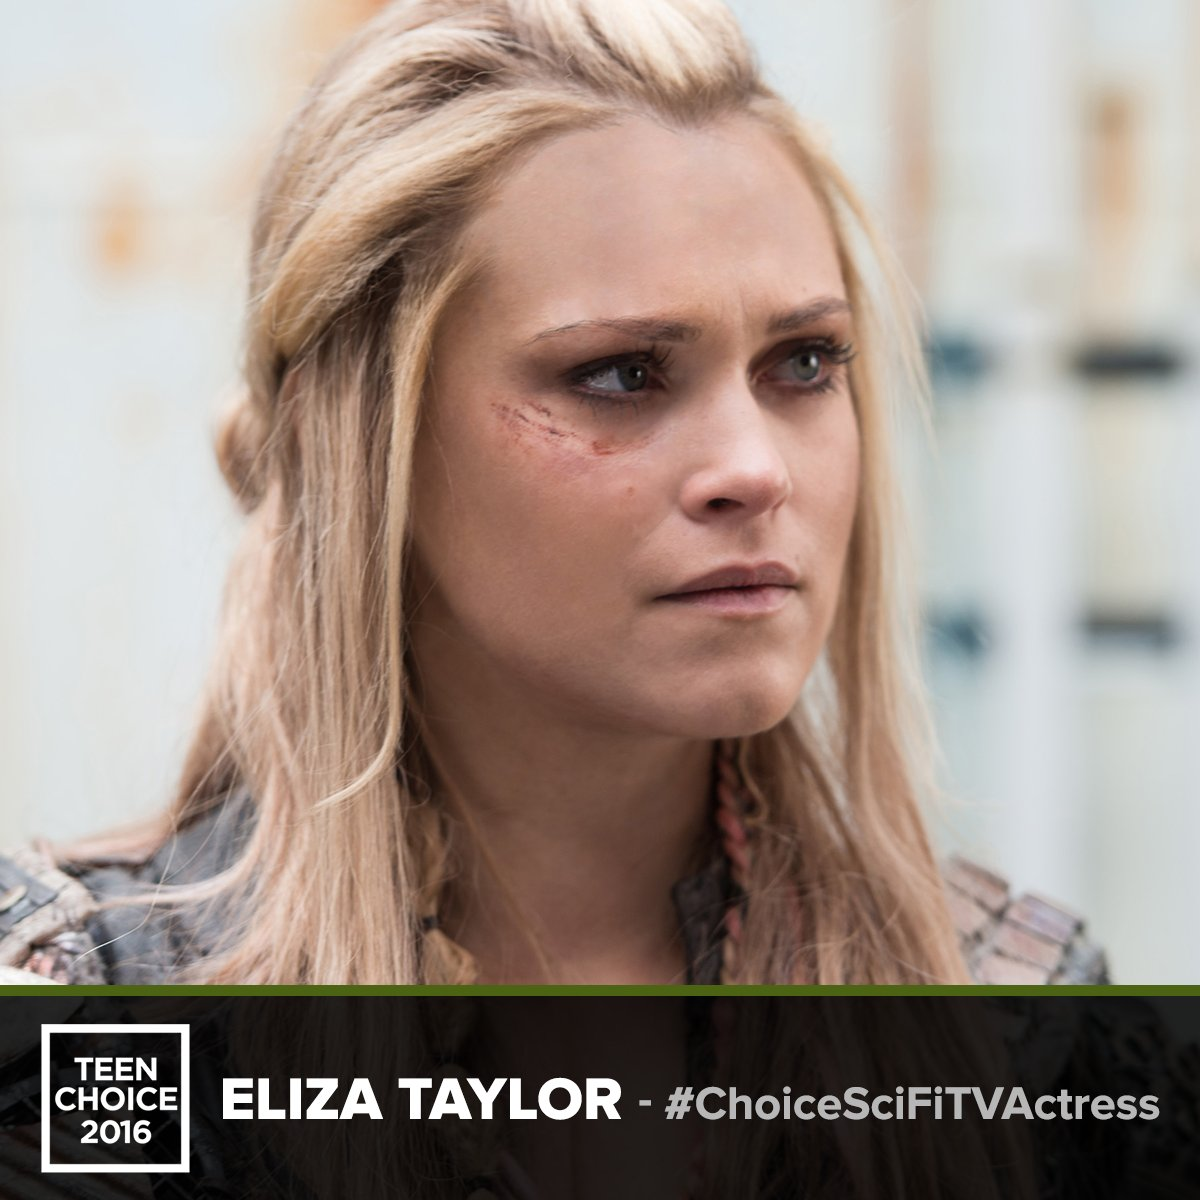 Vote for @MisElizaJane in the 2016 Teen Choice Awards: https://t.co/IW6huxXmlo https://t.co/MlIB47J1is